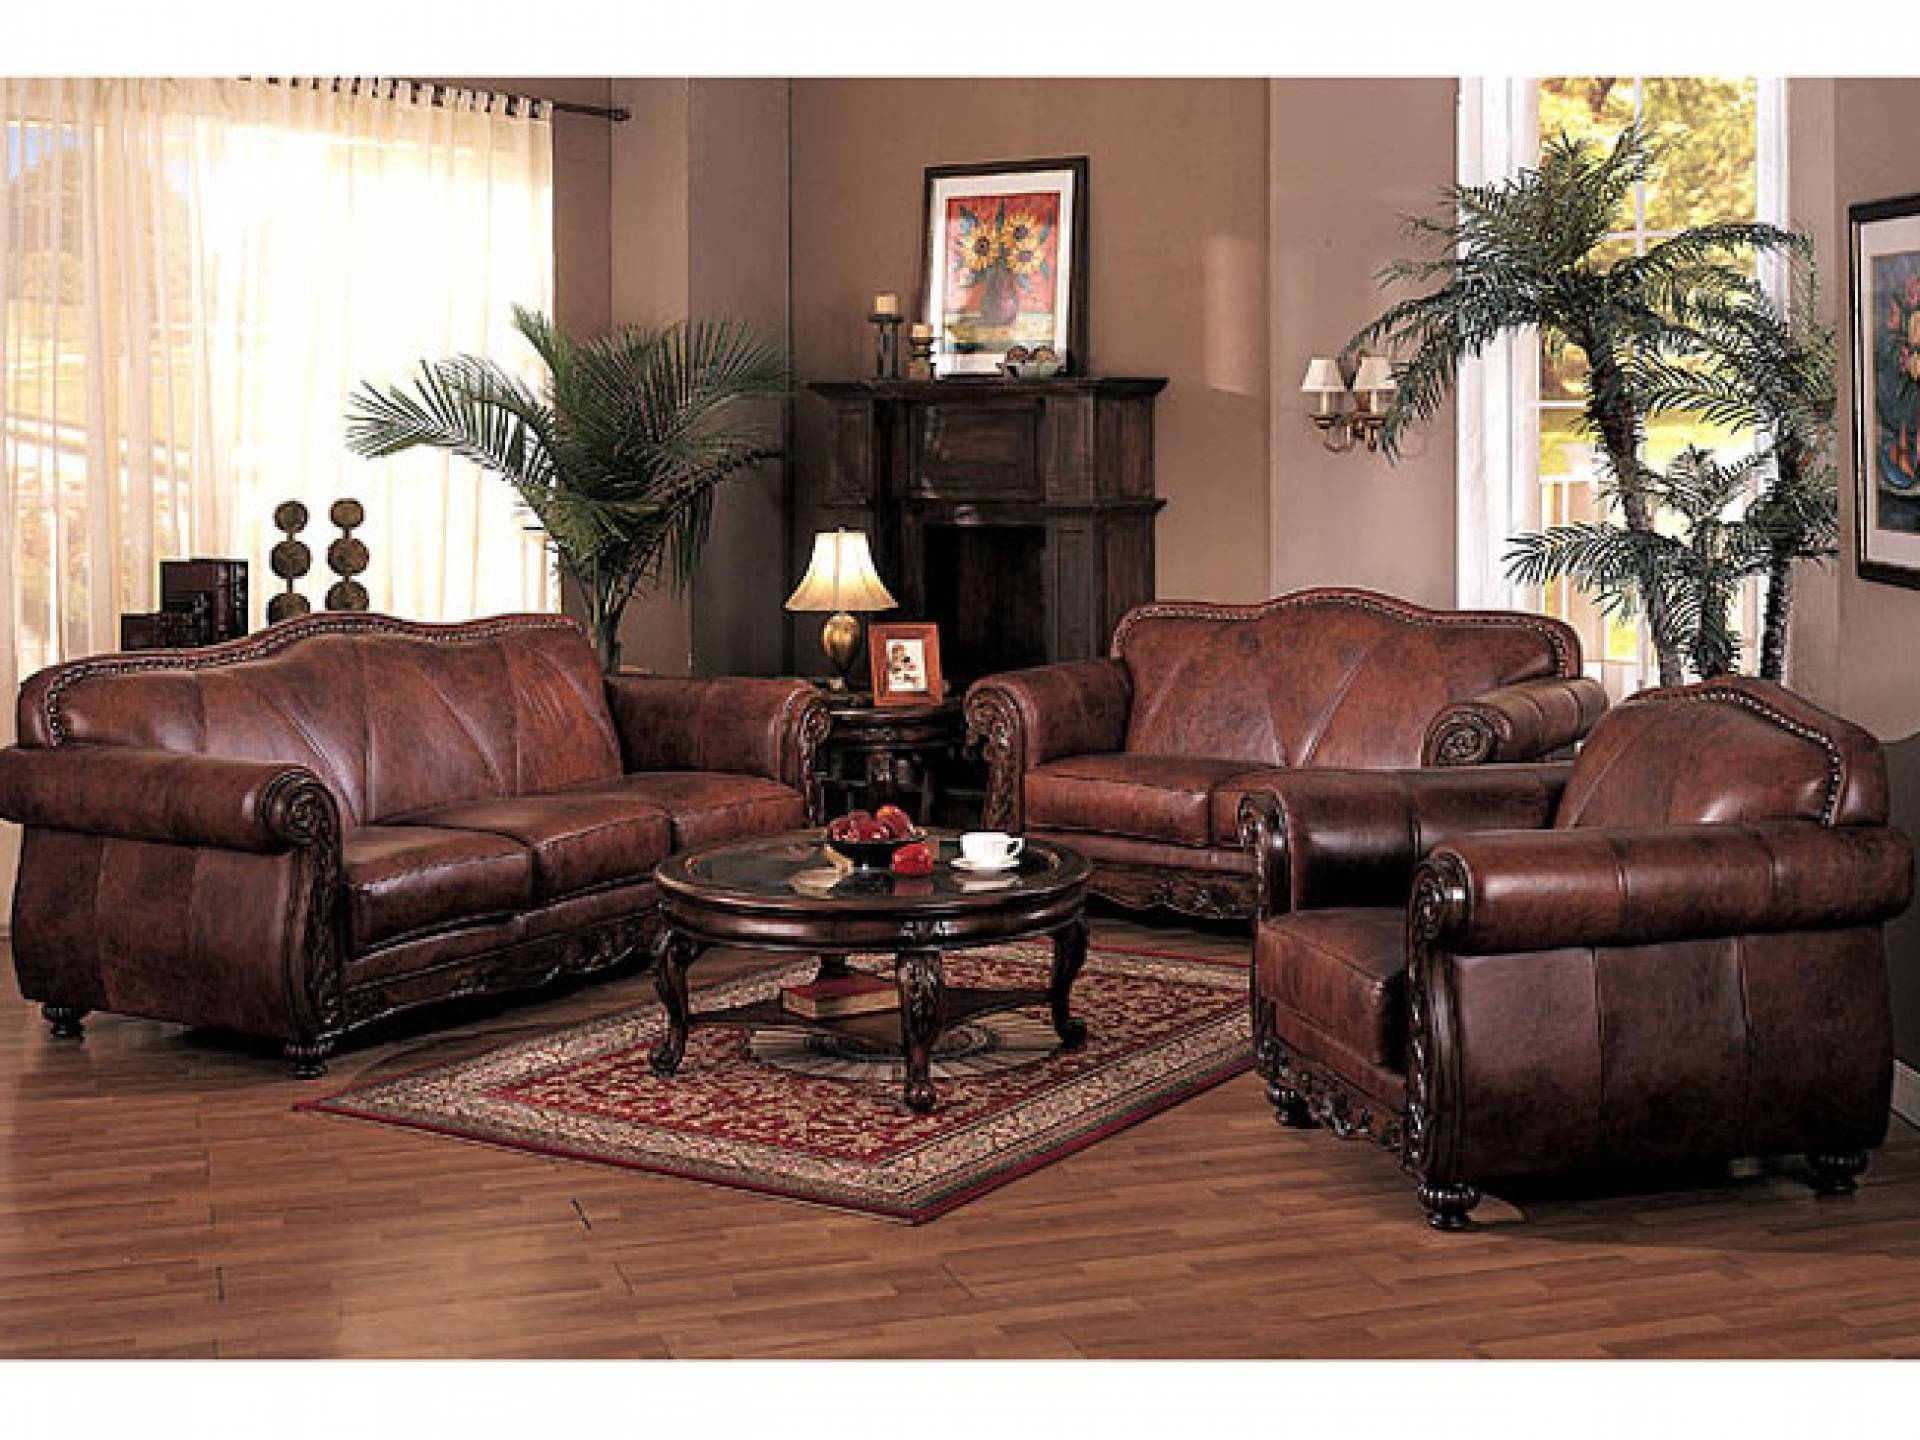 Burgundy Leather Sofa Living Room Furniture | Tehranmix Decoration For Burgundy Leather Sofa Sets (View 5 of 15)